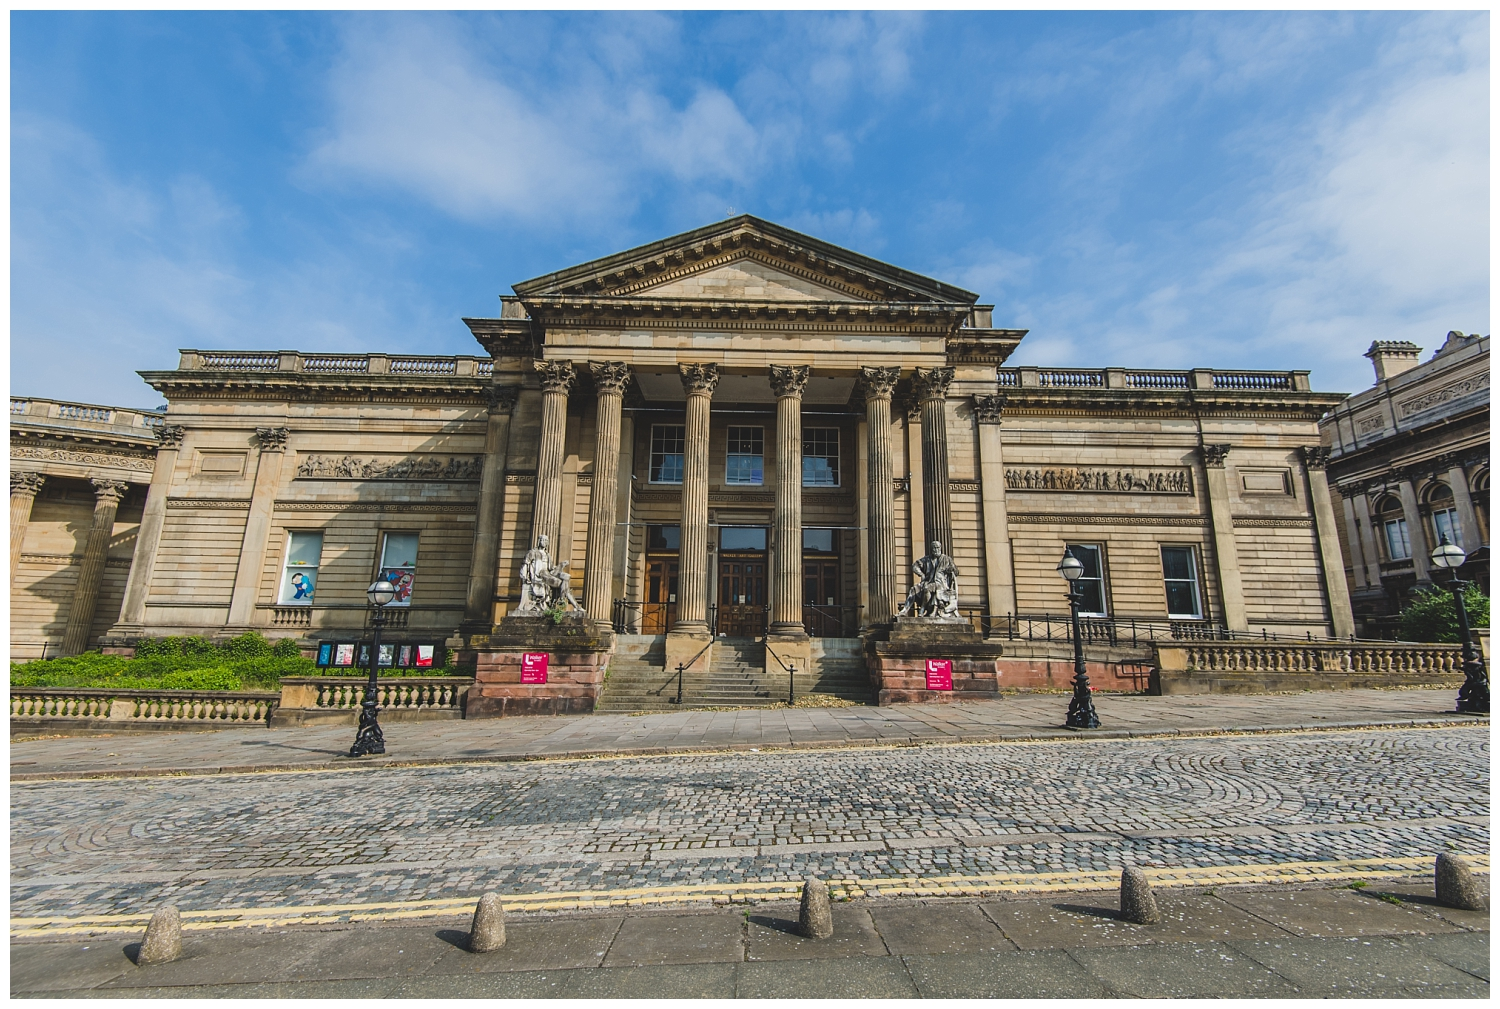 Walker Art Gallery Liverpool closed due to Covid-19